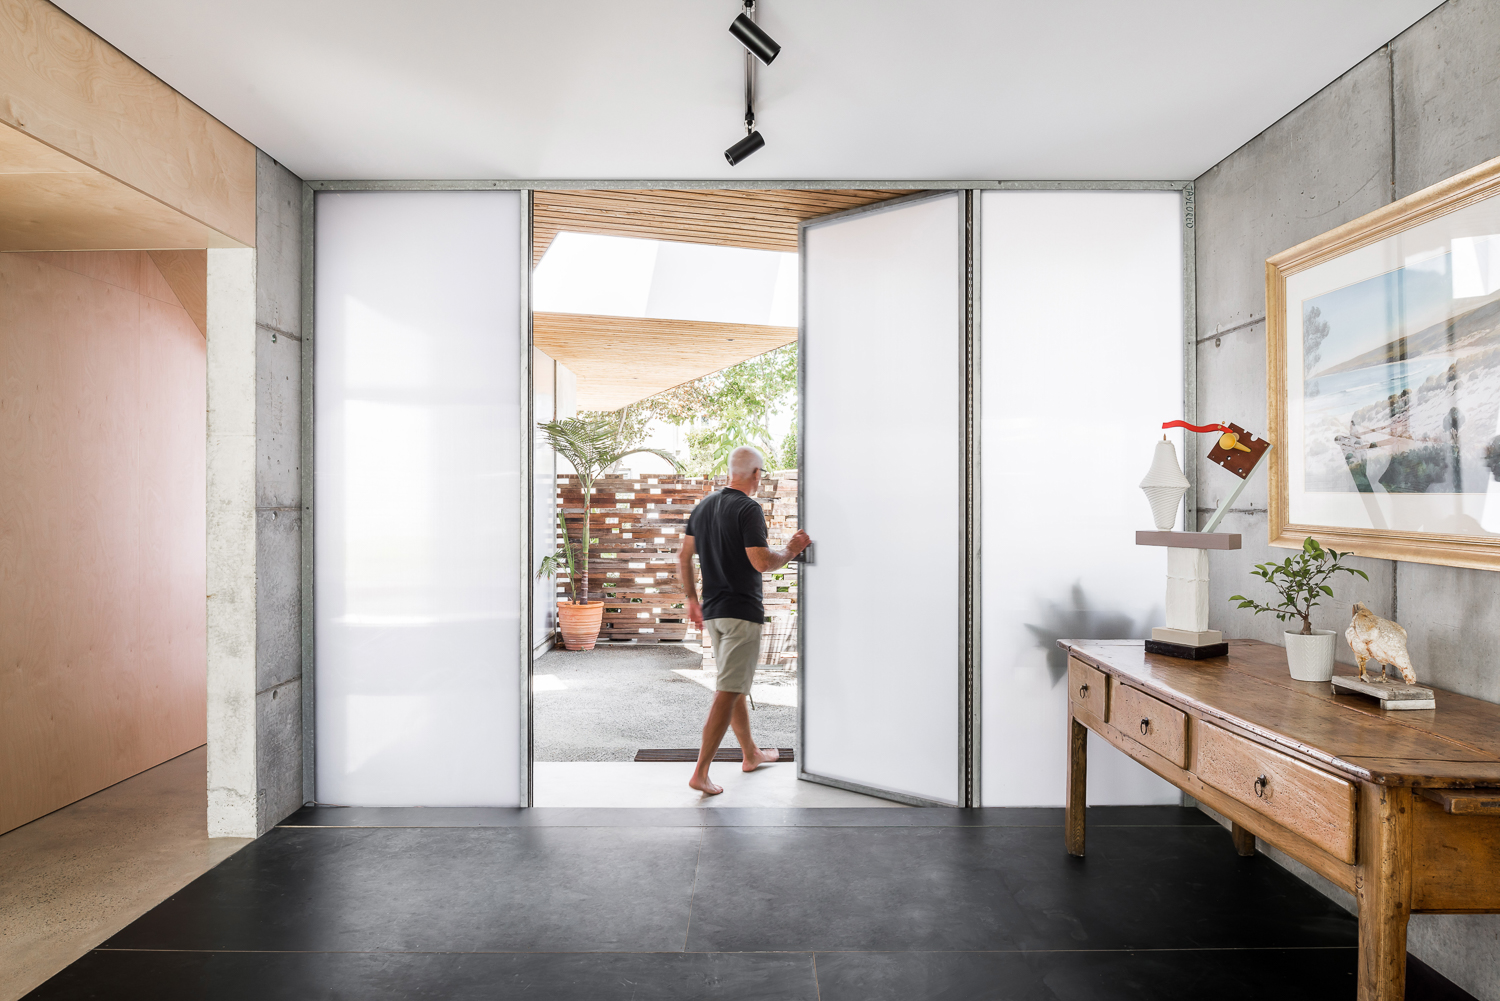 Gallery Of Silver Street House By Ehdo Architecture Local Design And Interiors South Fremantle, Wa Image 13